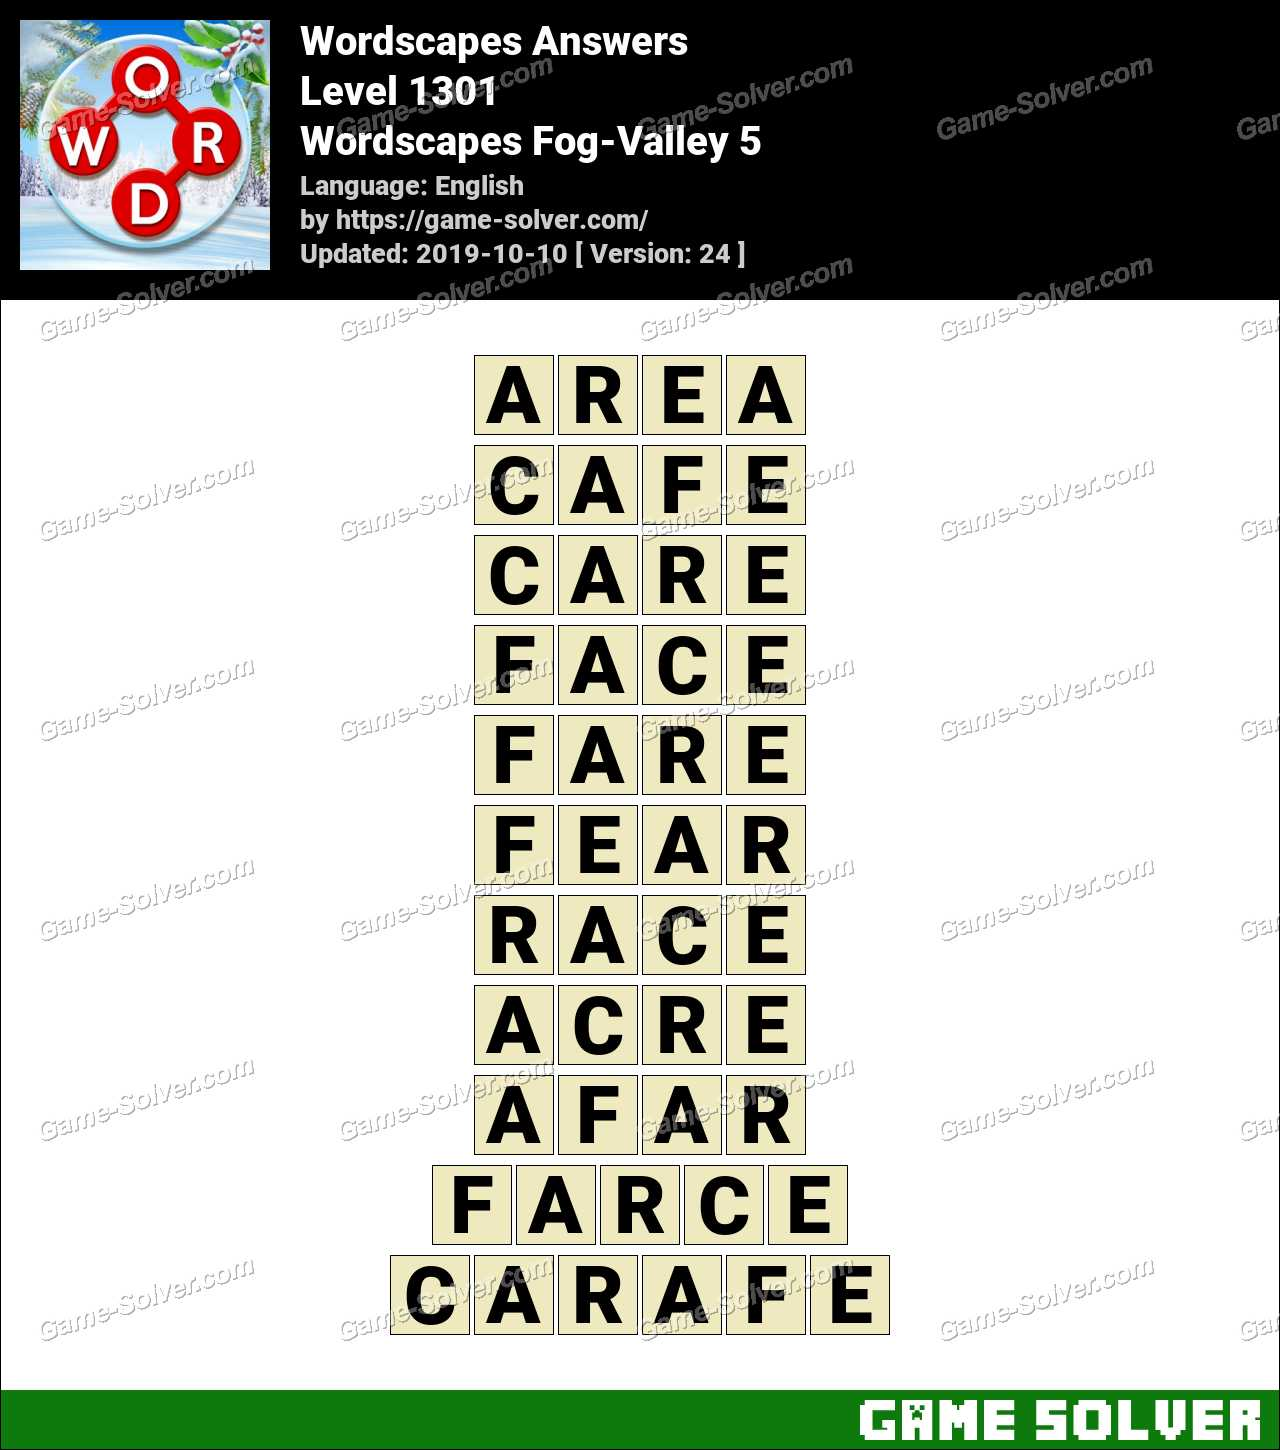 Wordscapes Fog-Valley 5 Answers